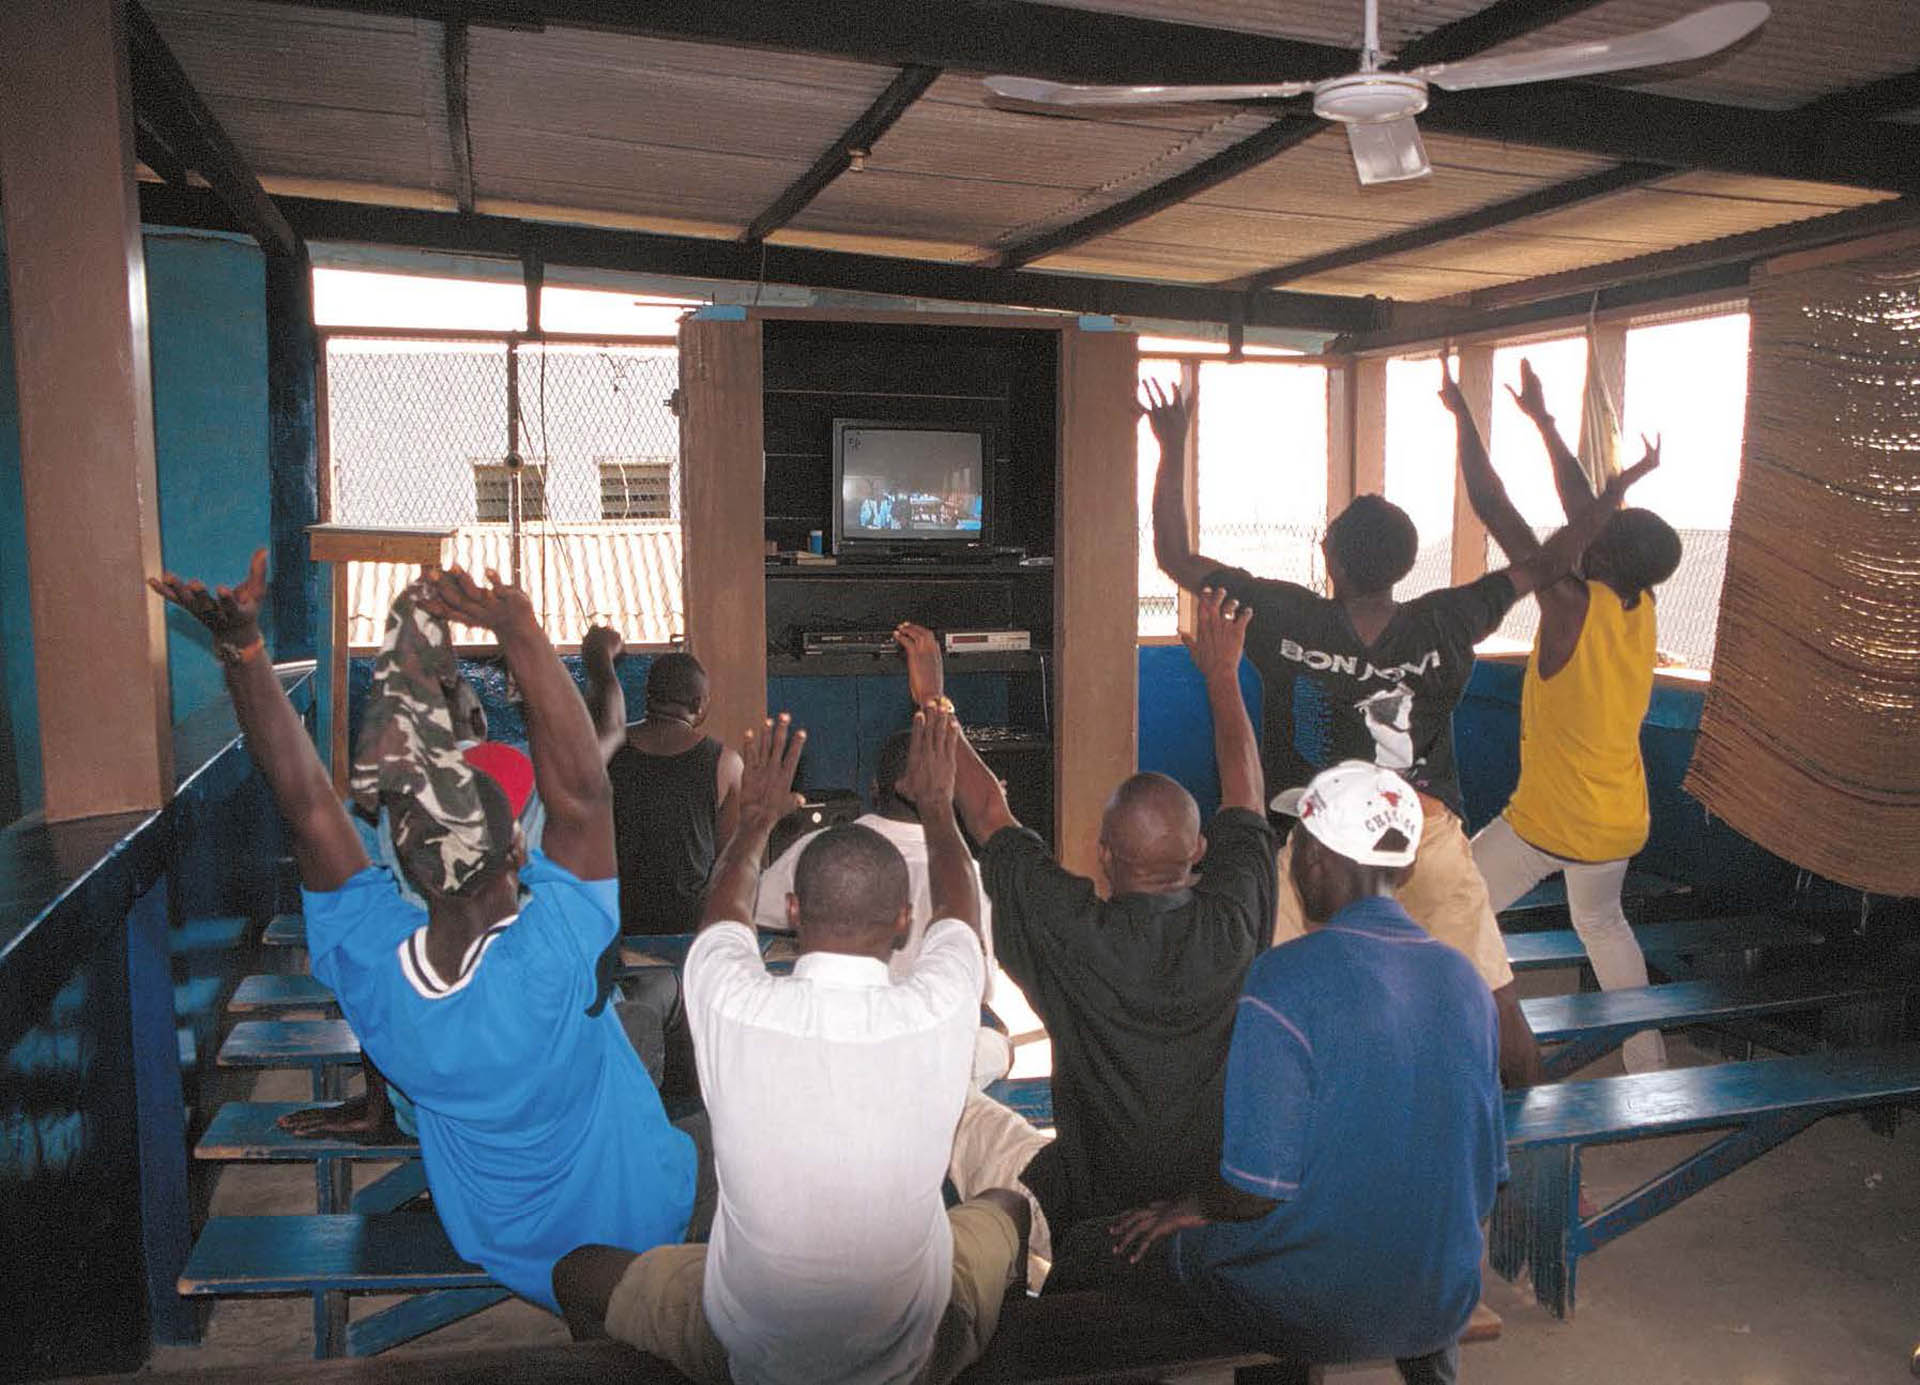 Video club audience in Tema, 1998